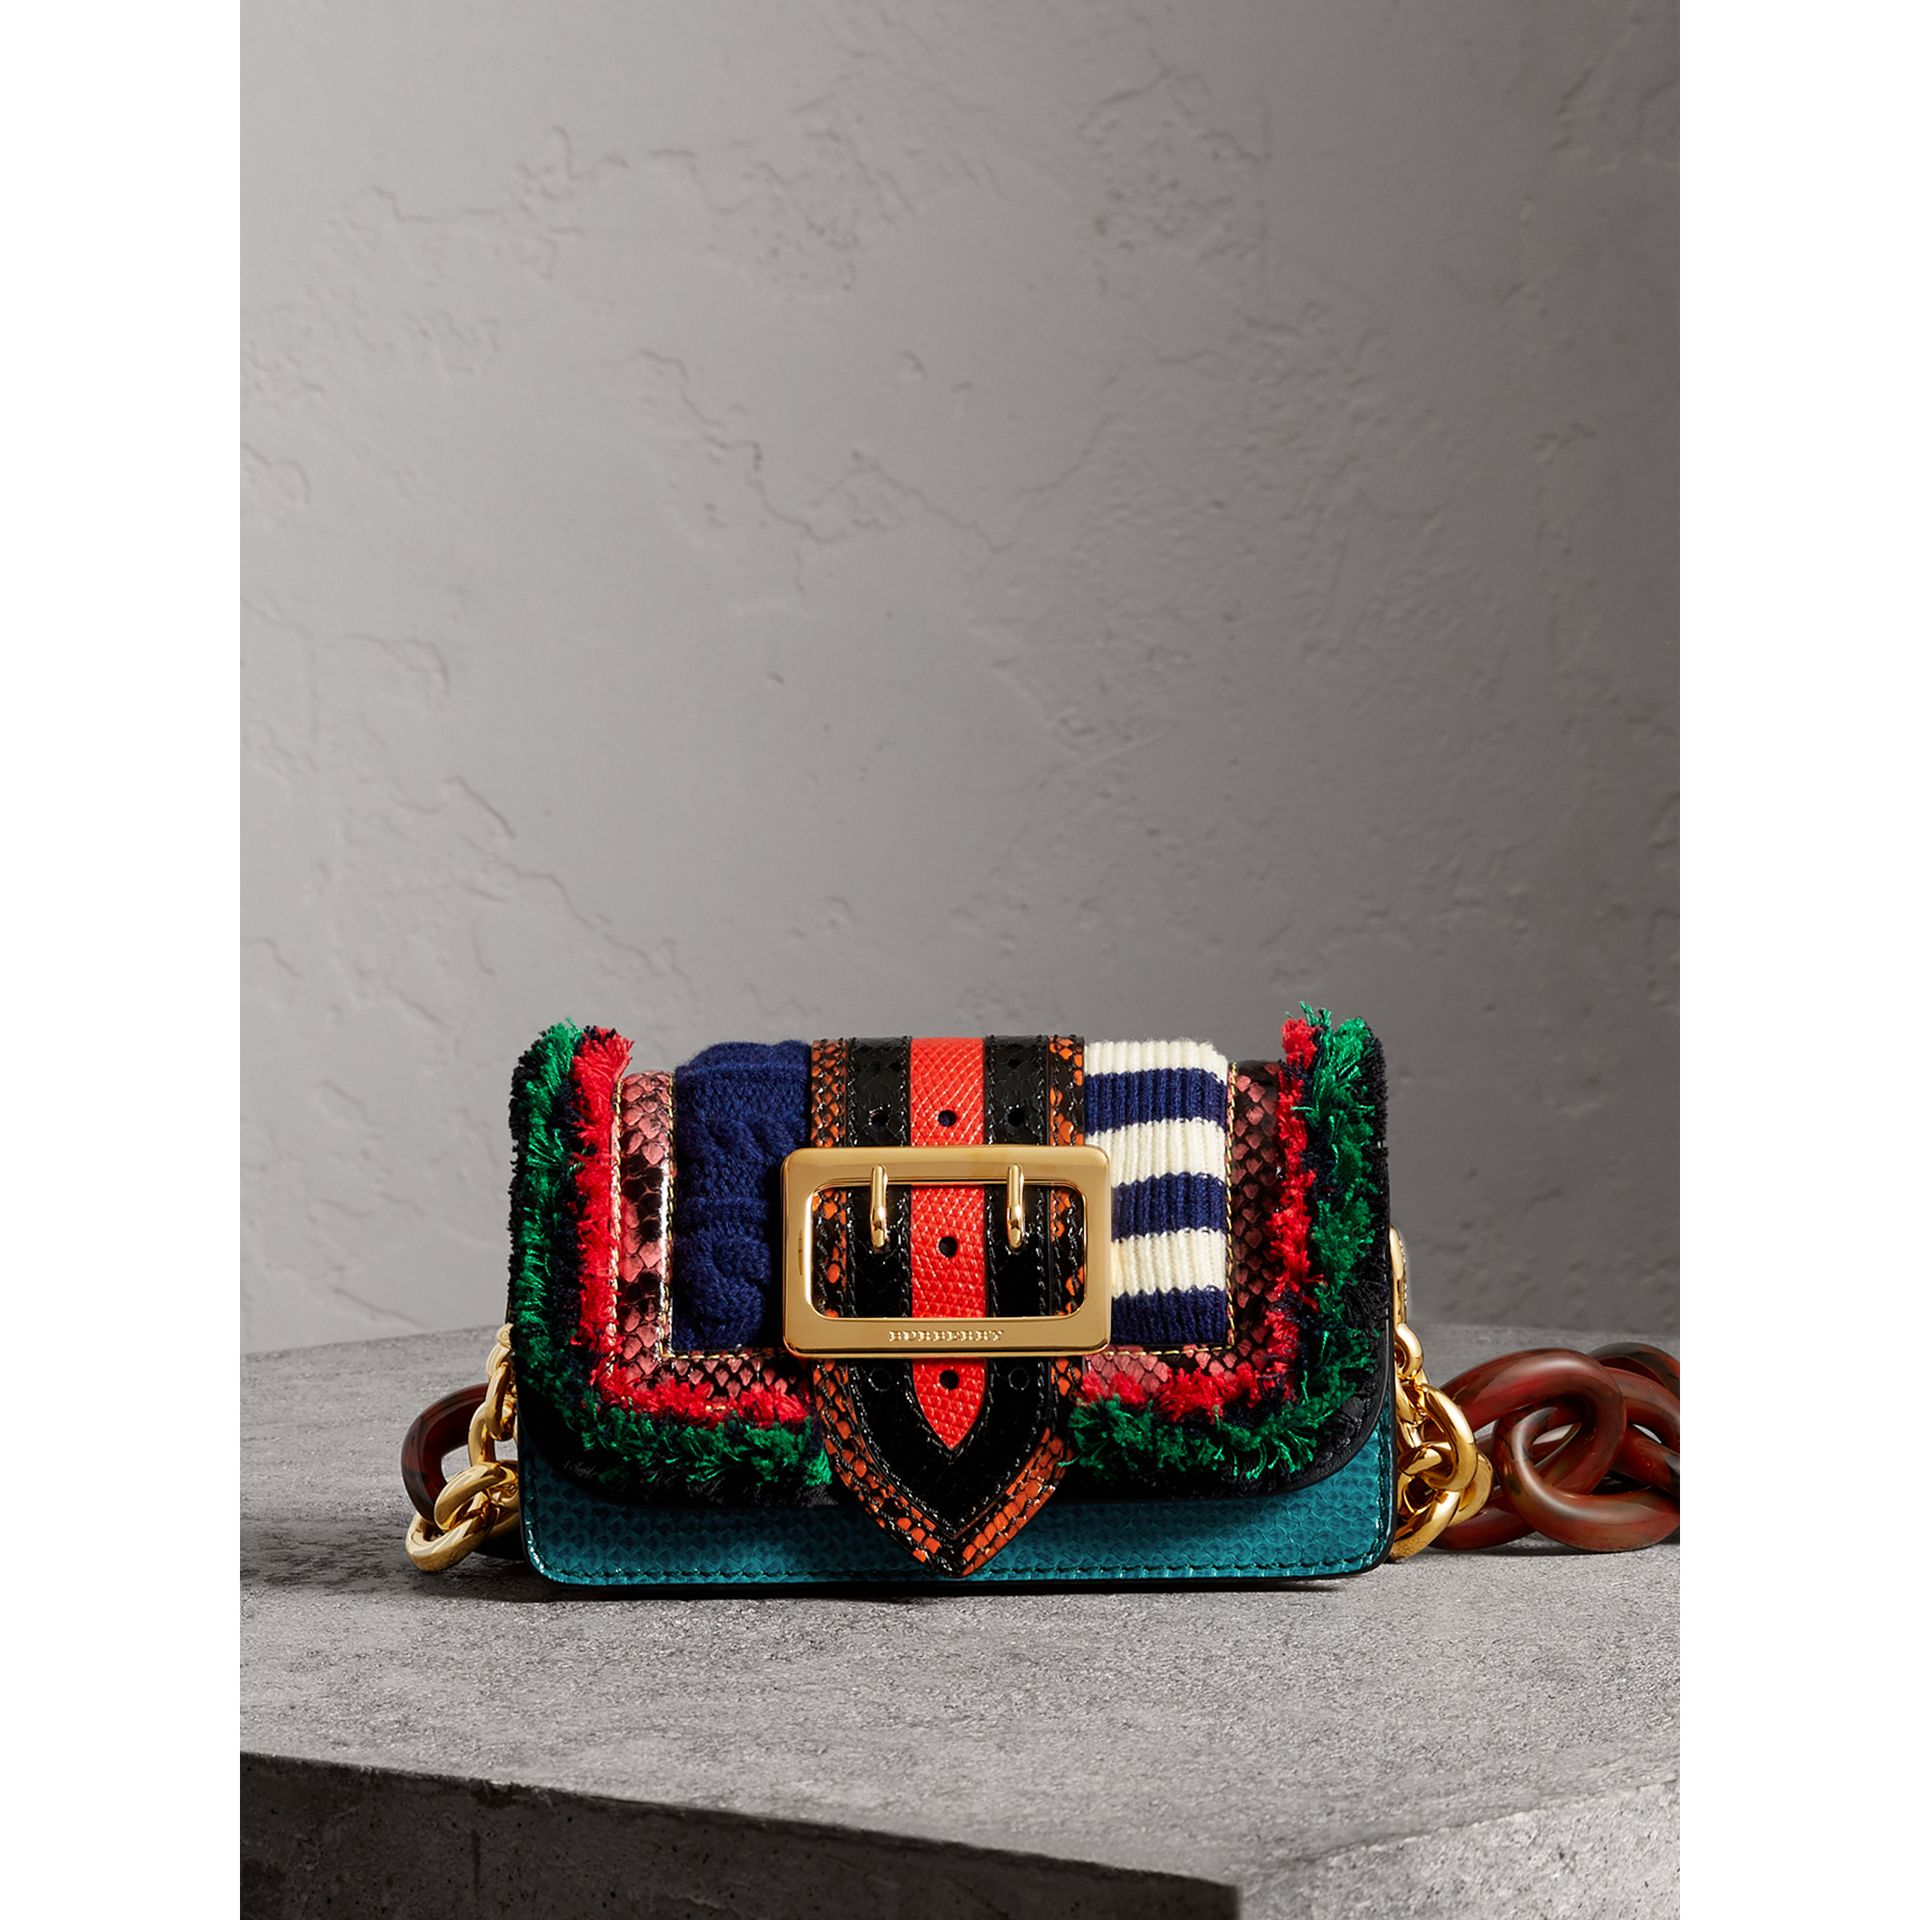 Sac The Patchwork en cuir exotique et maille de laine (Multicolore) - Femme | Burberry - photo de la galerie 0